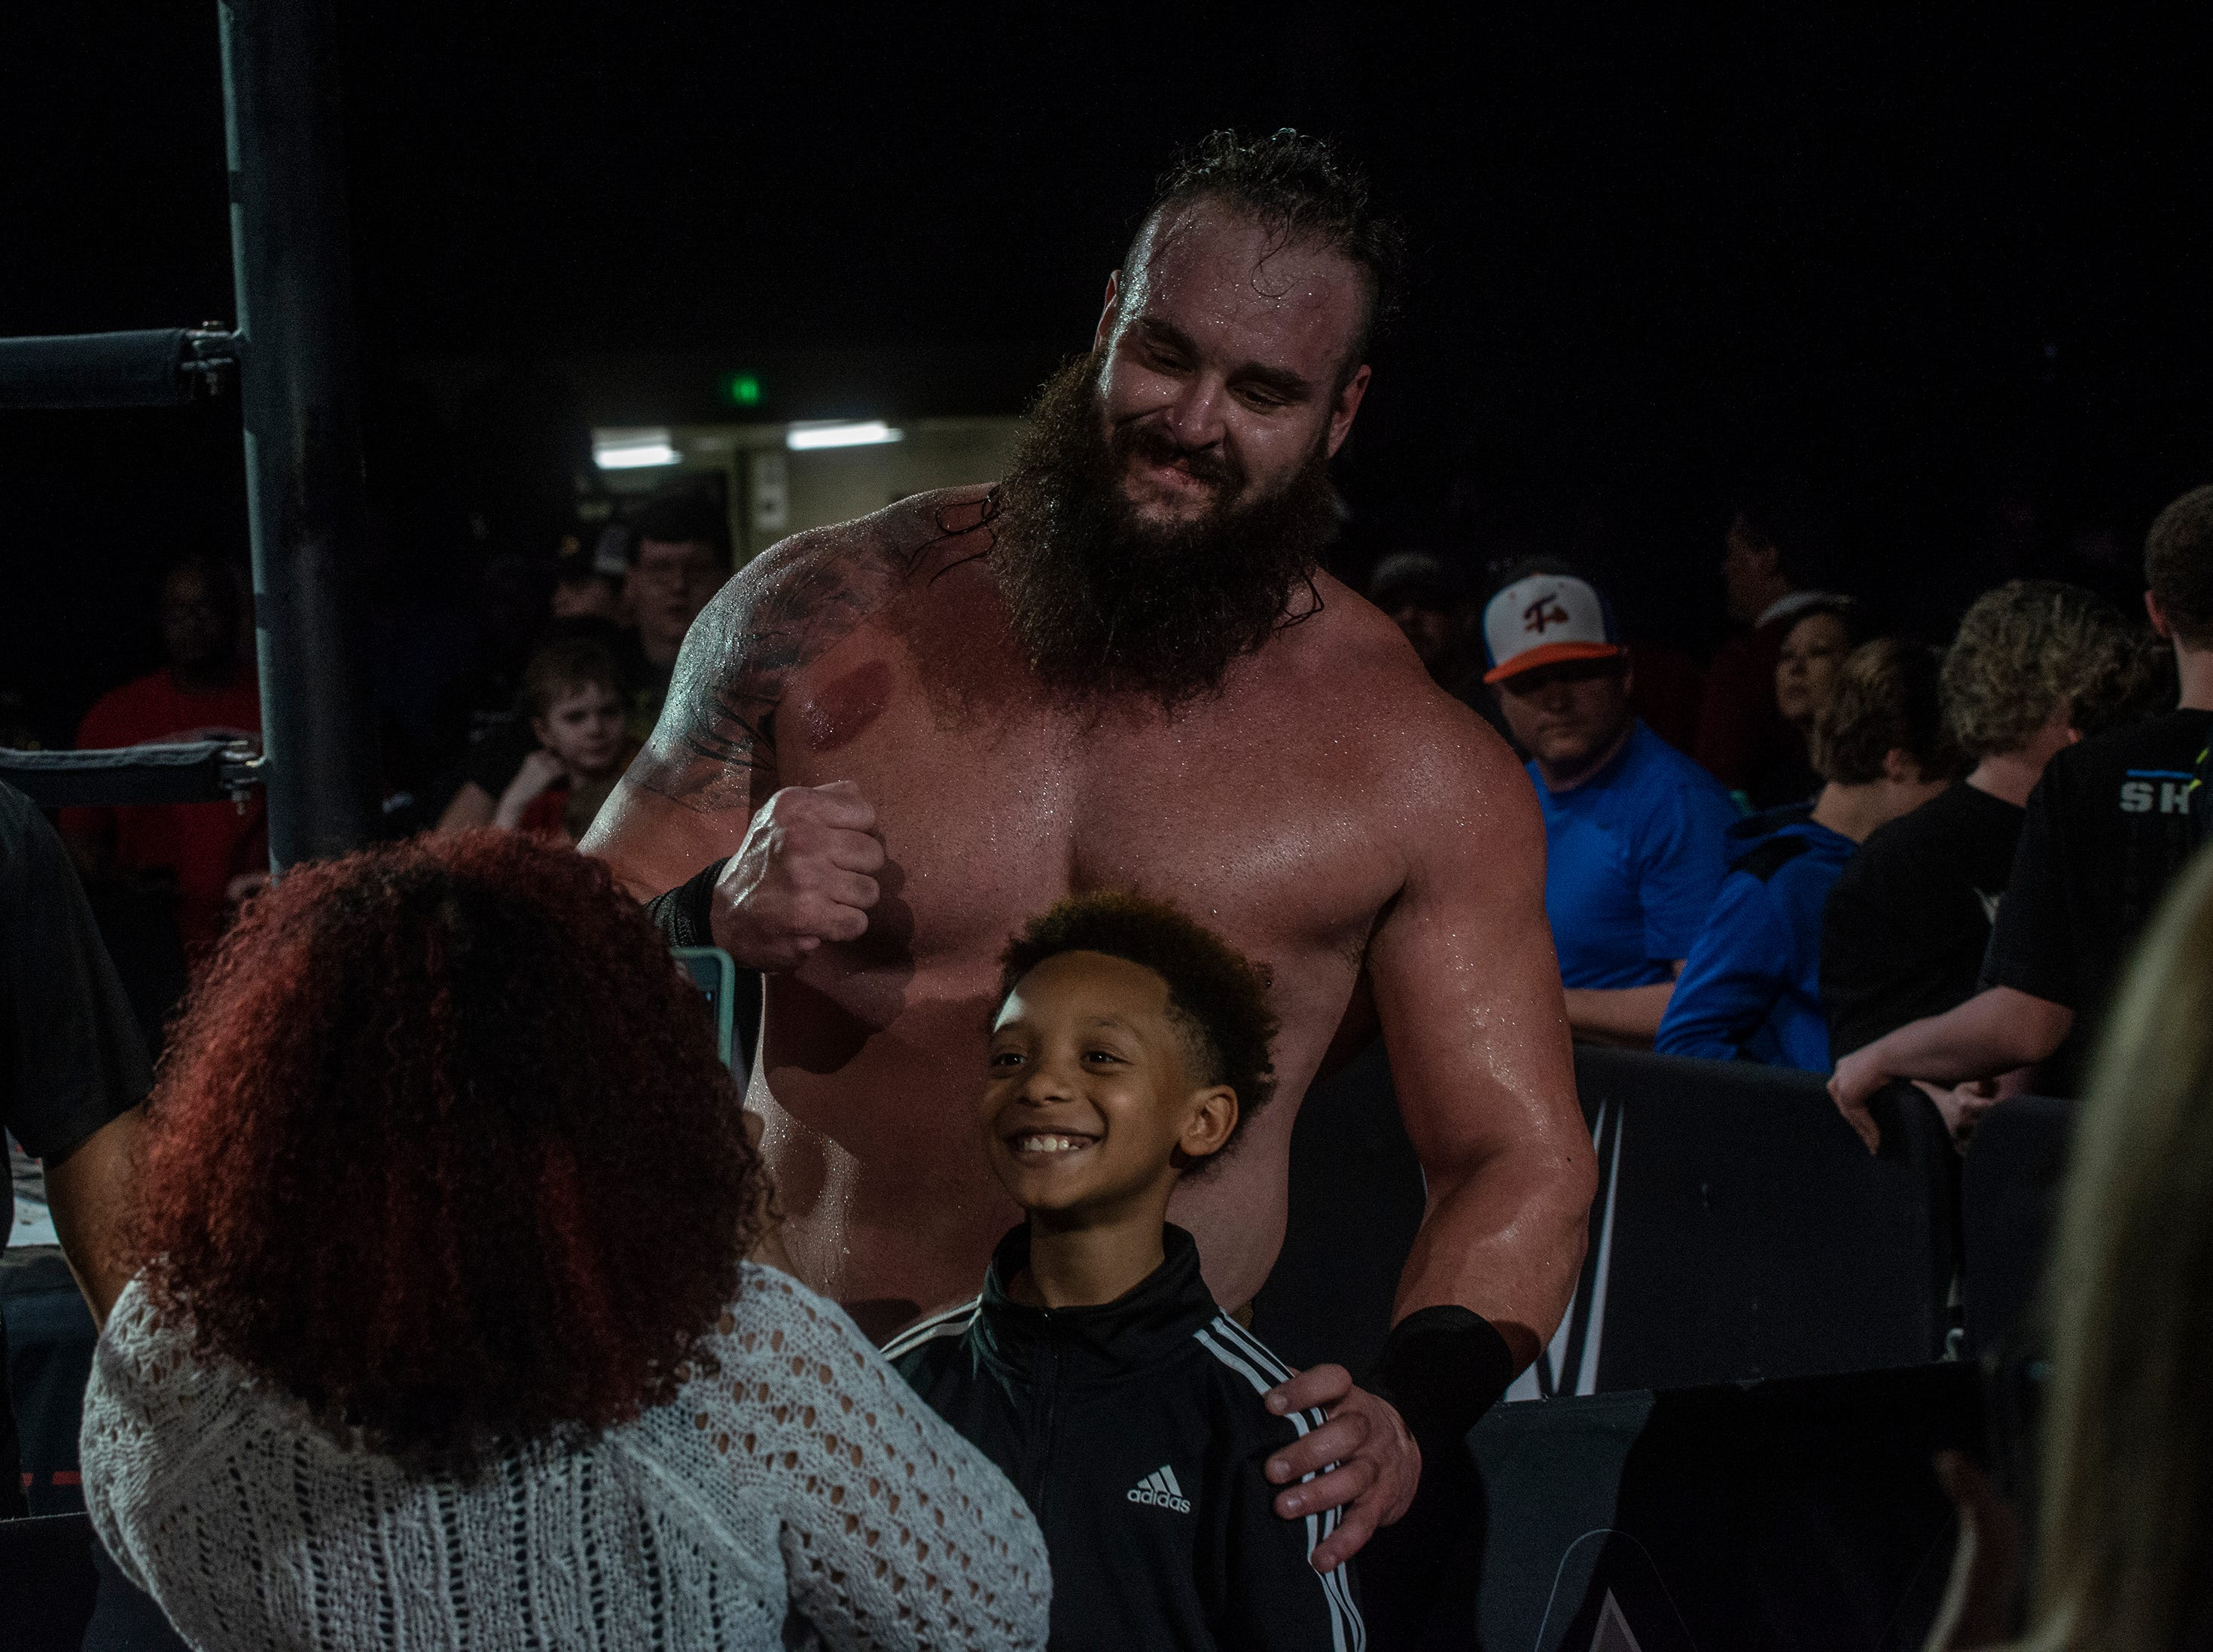 Braun Strowman greets his fans after the match. The main event was a street fight between Baron Corbin and Braun Strowman, with lots of of chairs, sticks and tables. WWE Live Road to Wrestlemania came to Garrett Coliseum in Montgomery on Sunday, Feb. 24, 2019.